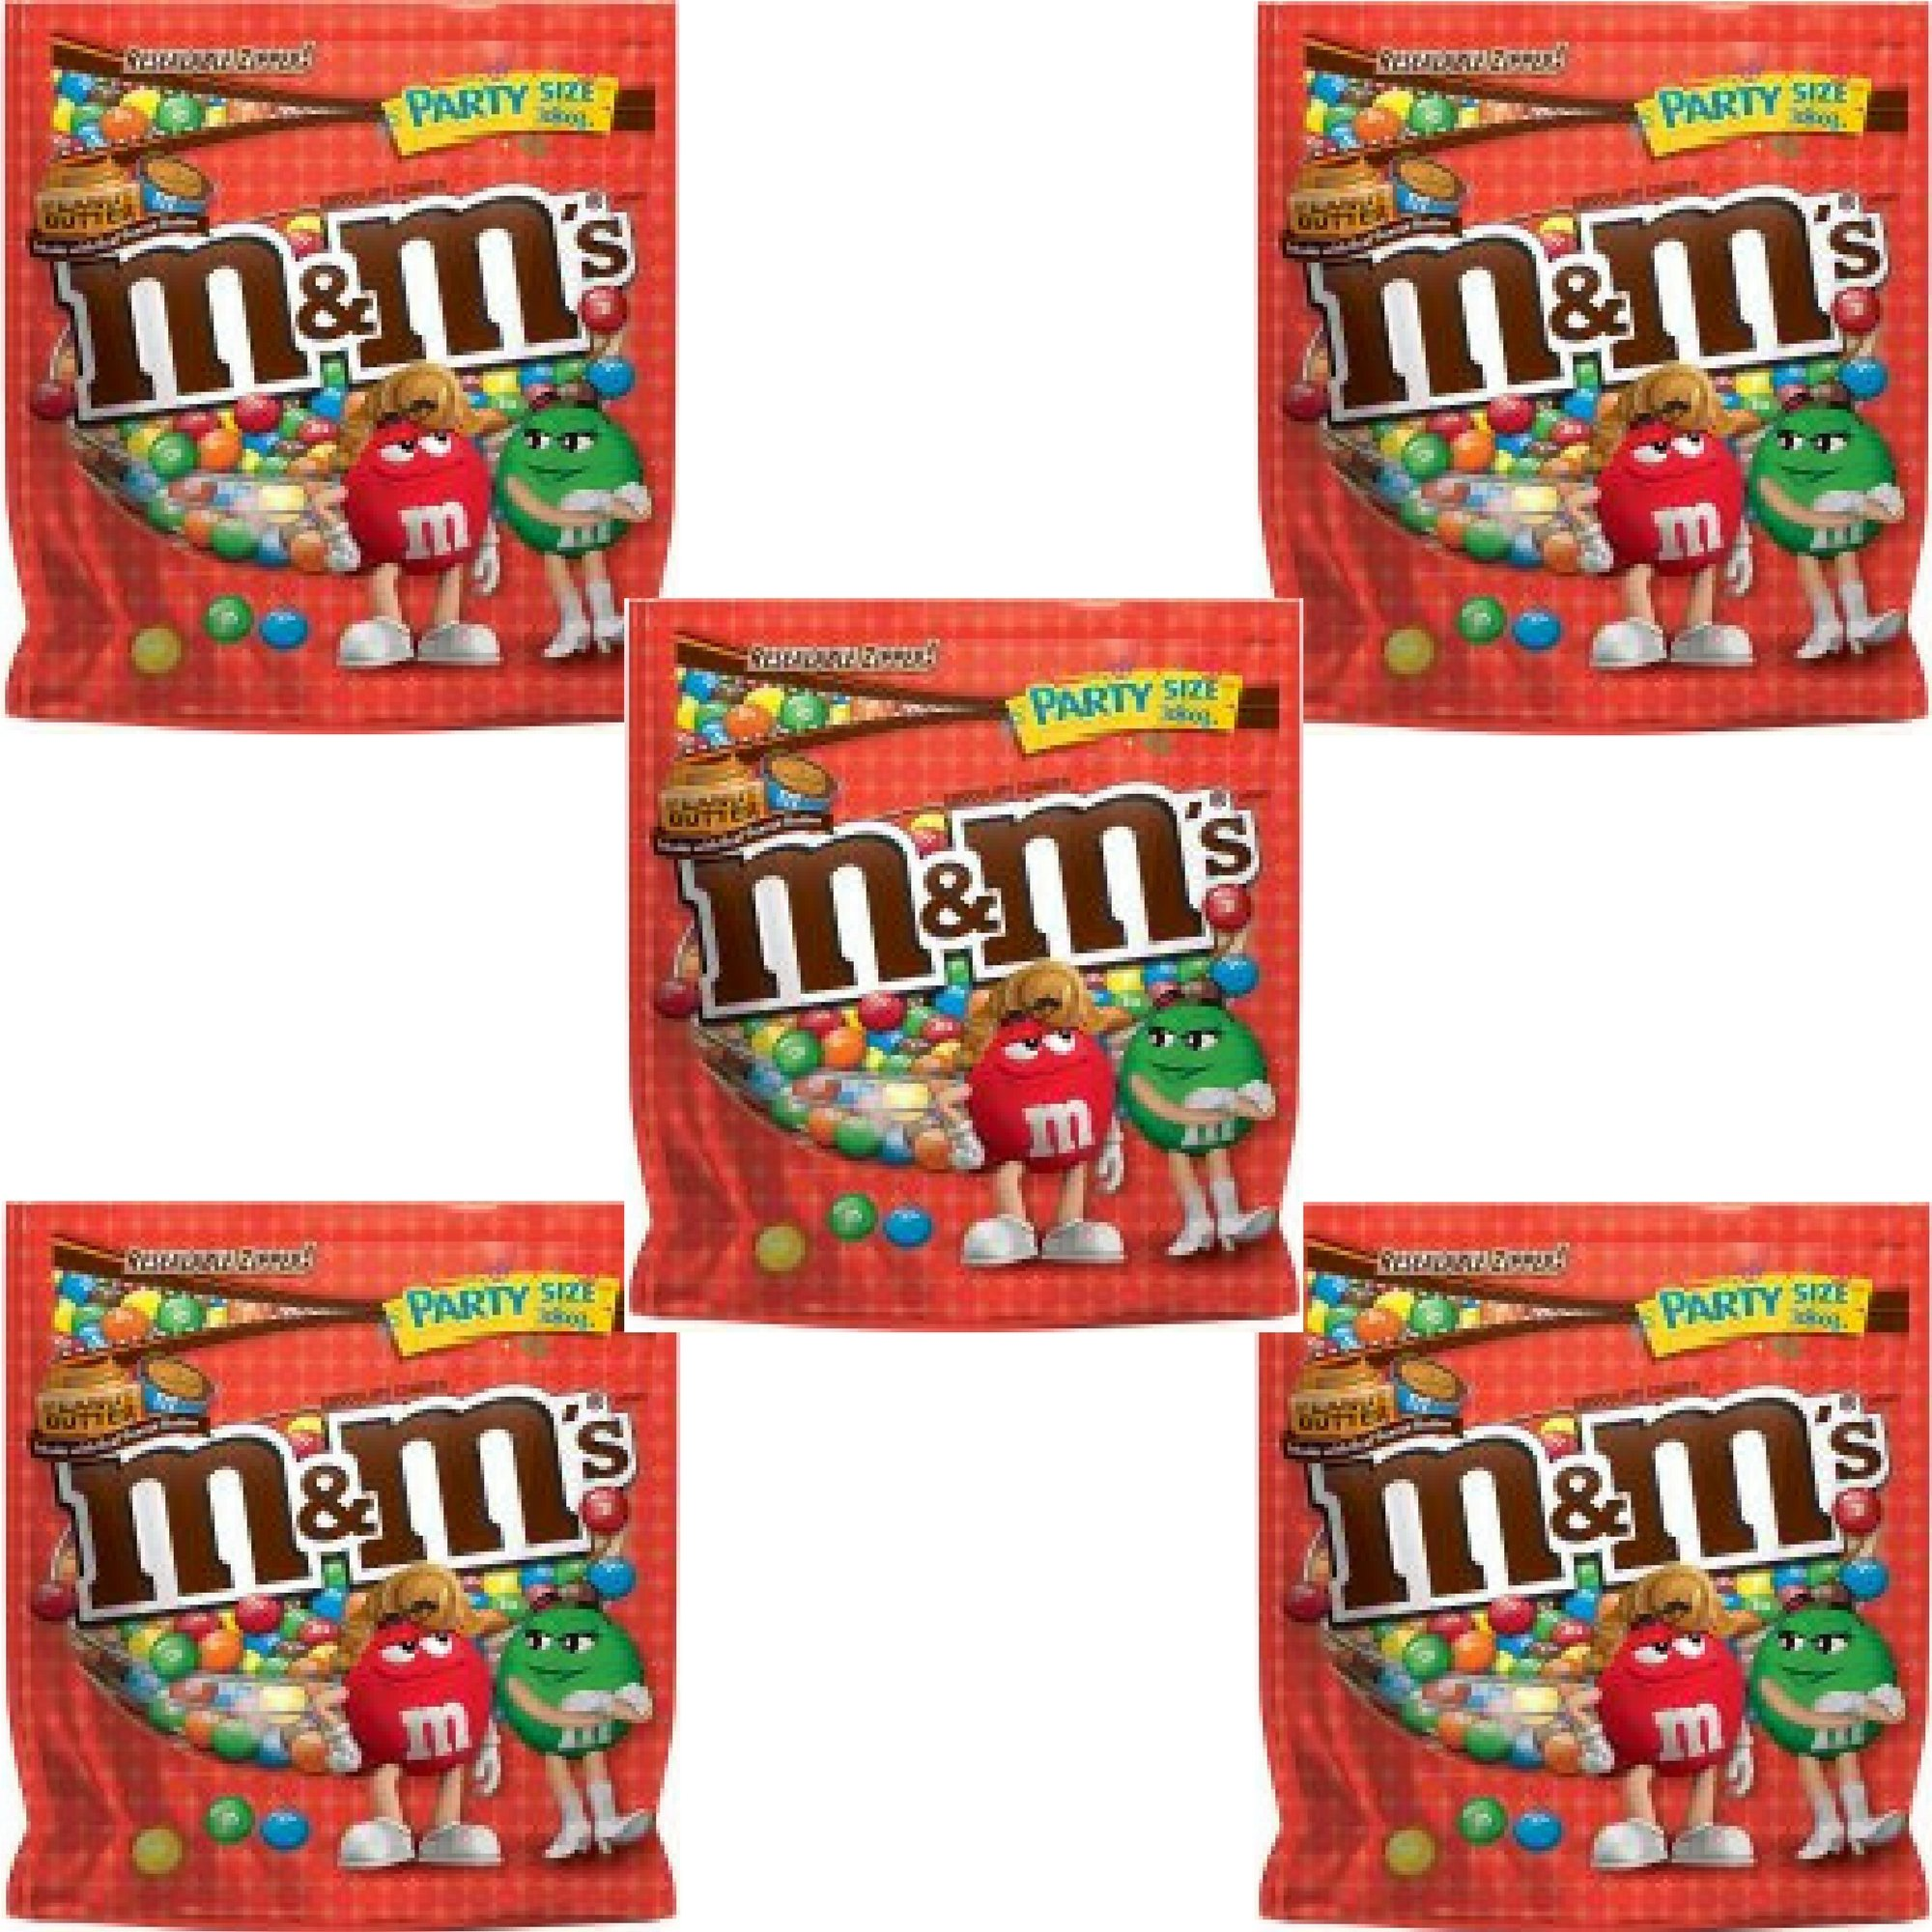 M&M'S Peanut Butter Chocolate Candy Party Size Bag, 38 oz - Pack of 5